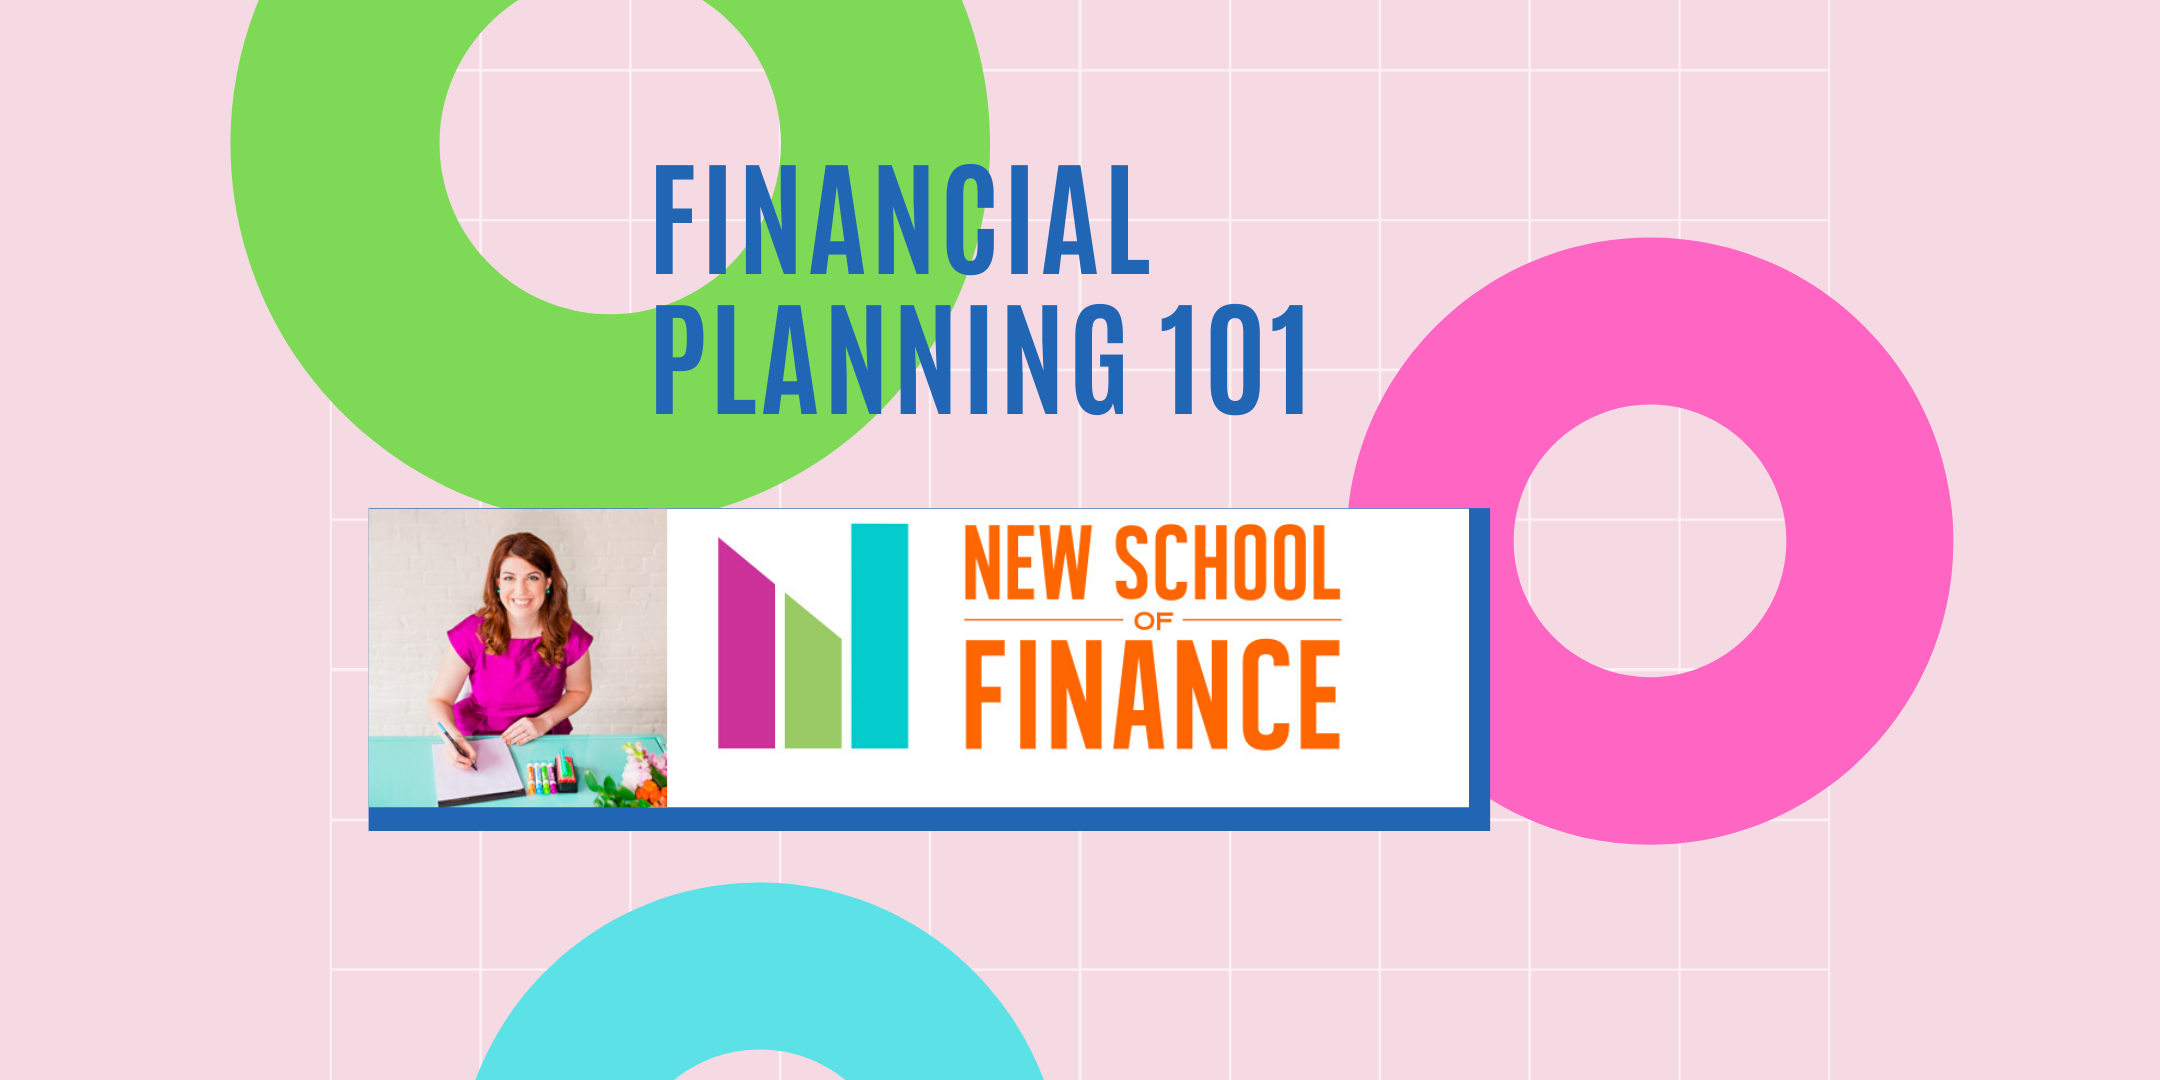 Financial Planning 101 for Hairstylist